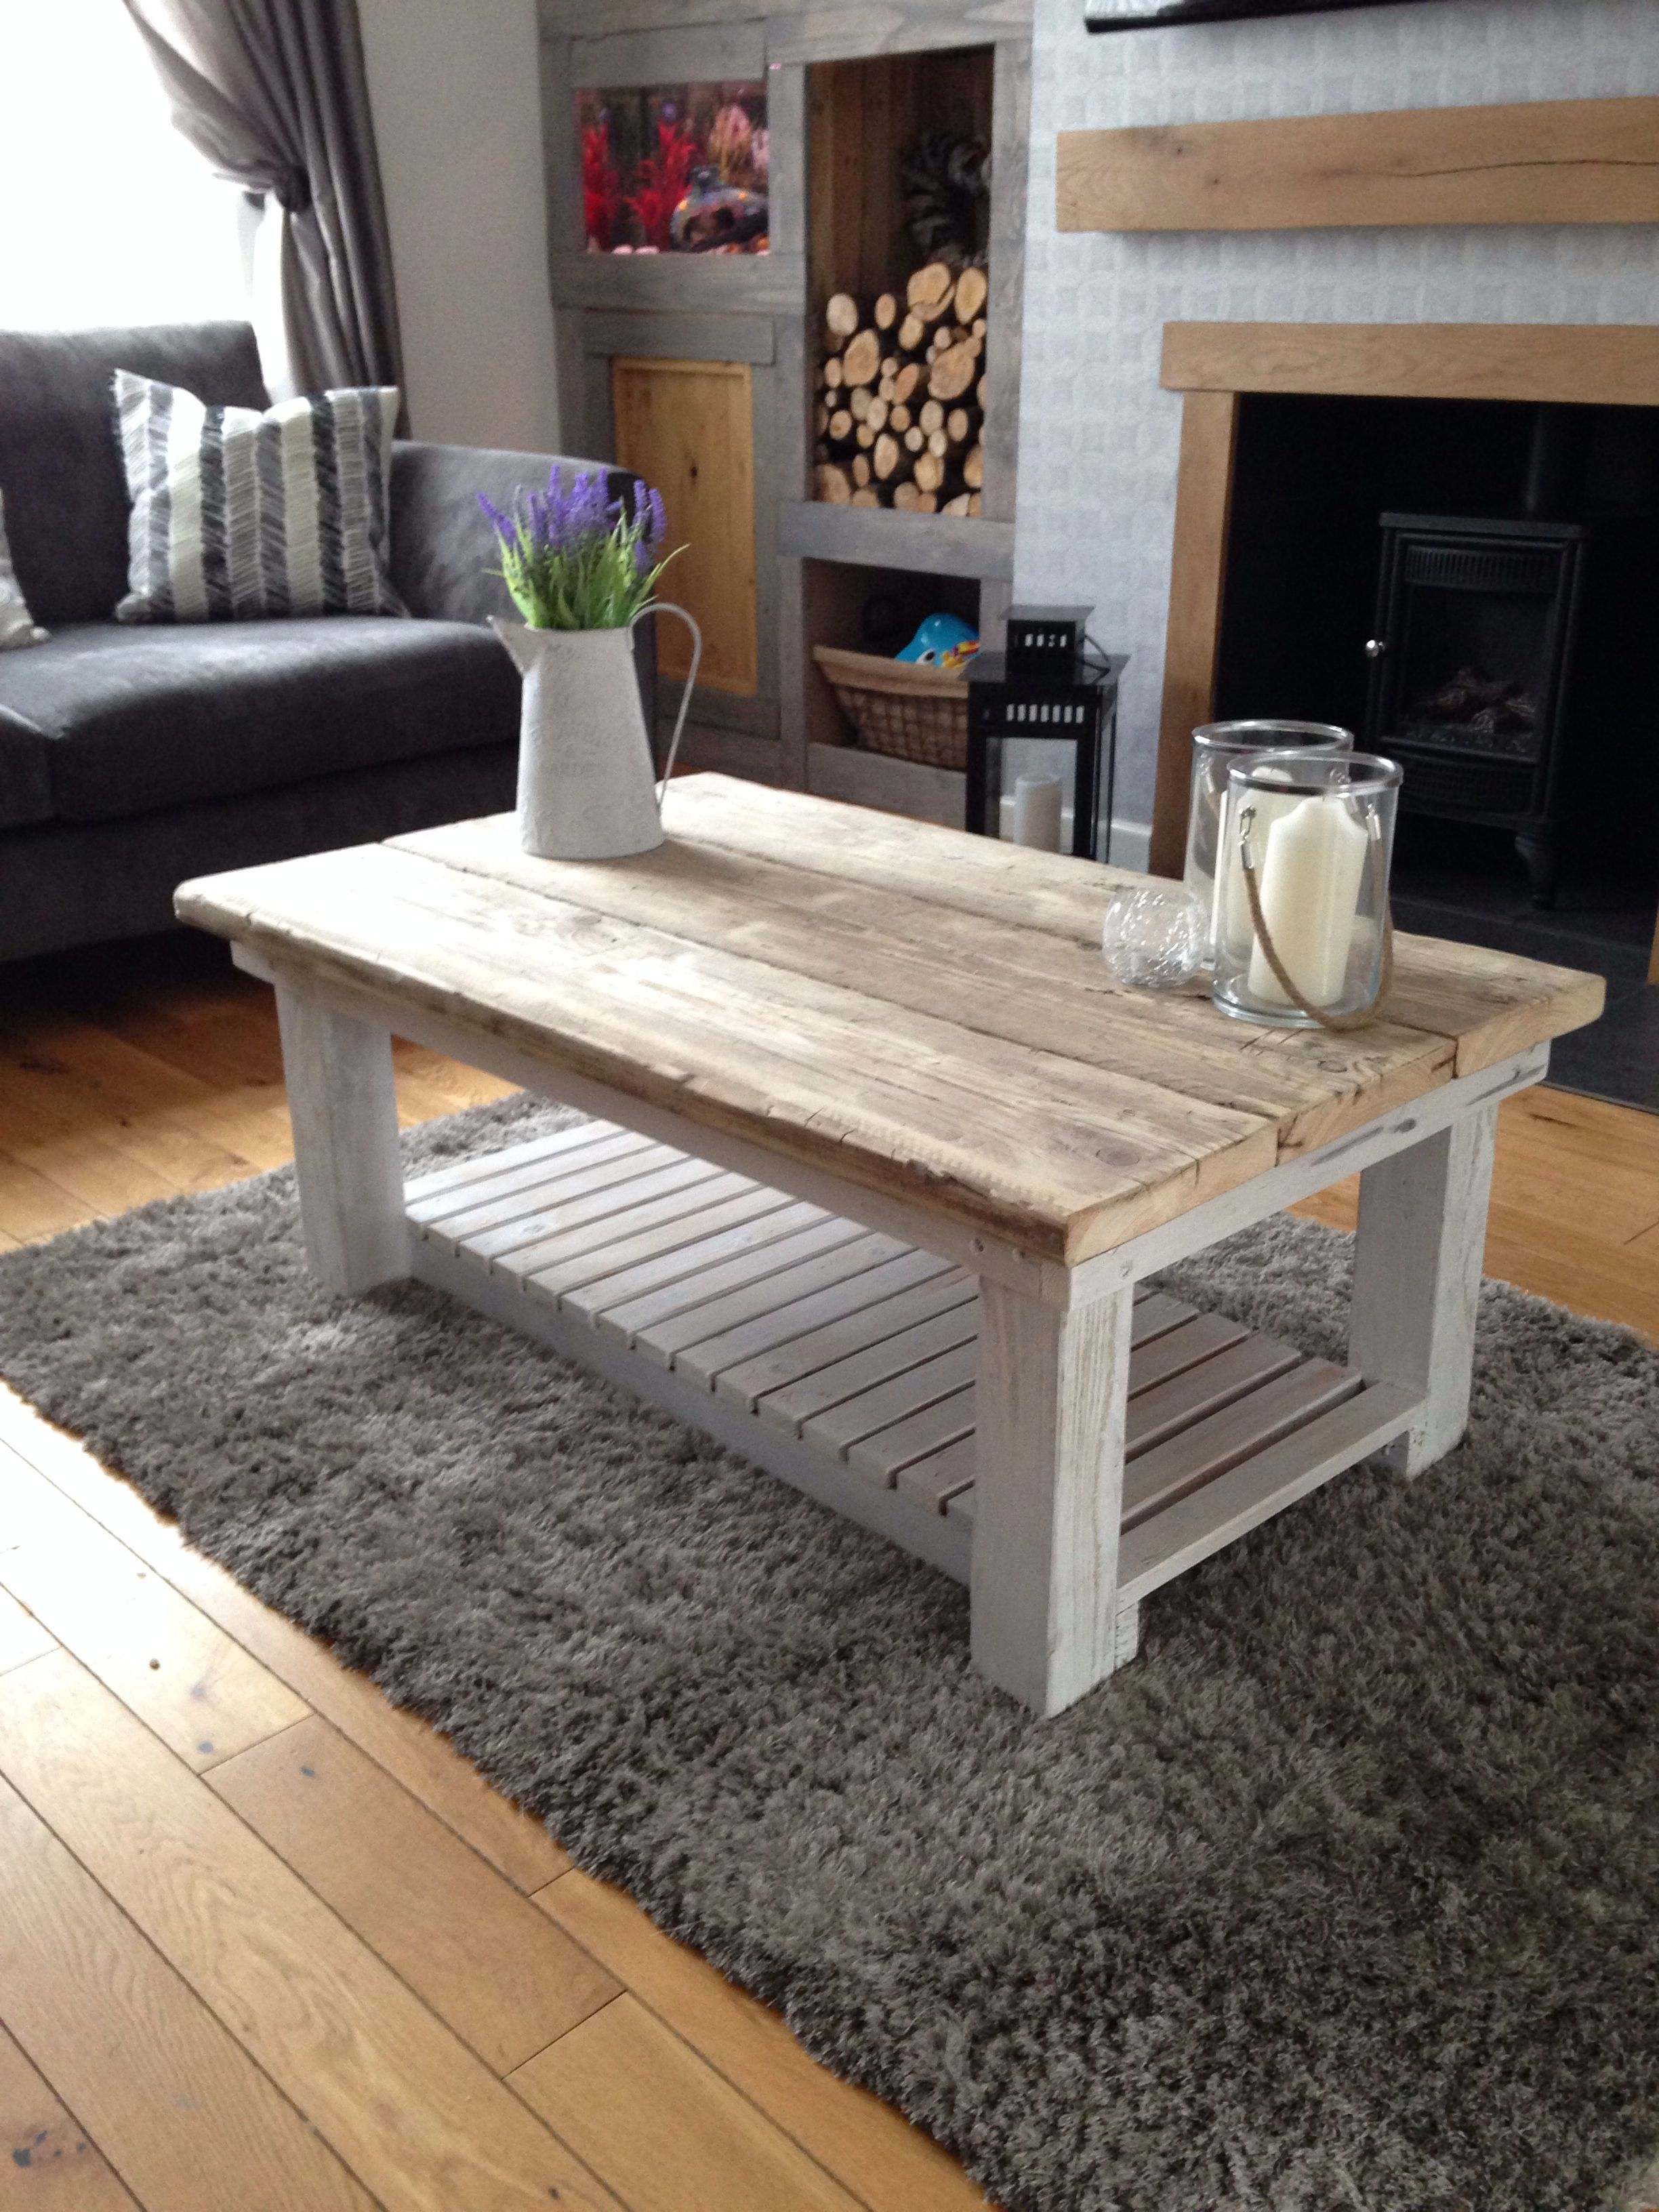 reclaimed scaffold board coffee table perfect addition to any decor shabby chic industrial. Black Bedroom Furniture Sets. Home Design Ideas